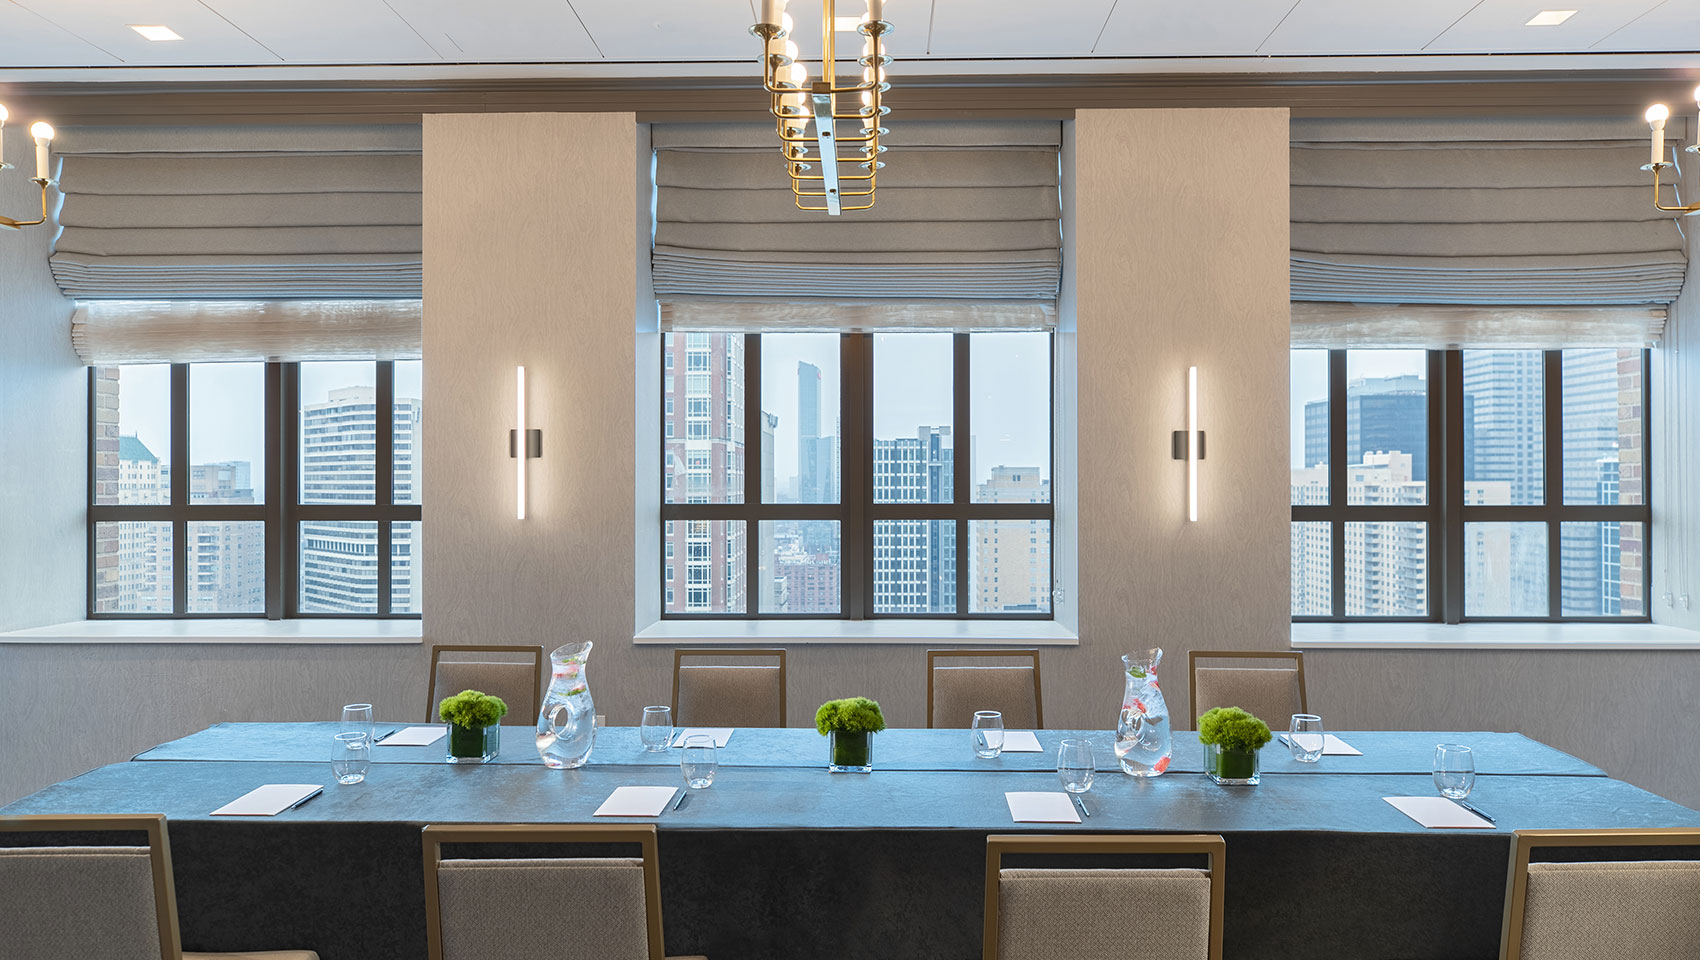 Conference Setup in Abe room located in Kimpton Hotel Palomar Philadelphia showing to long tables with notepads on top surrounded by chairs and large windows on the back wall that overlook city views